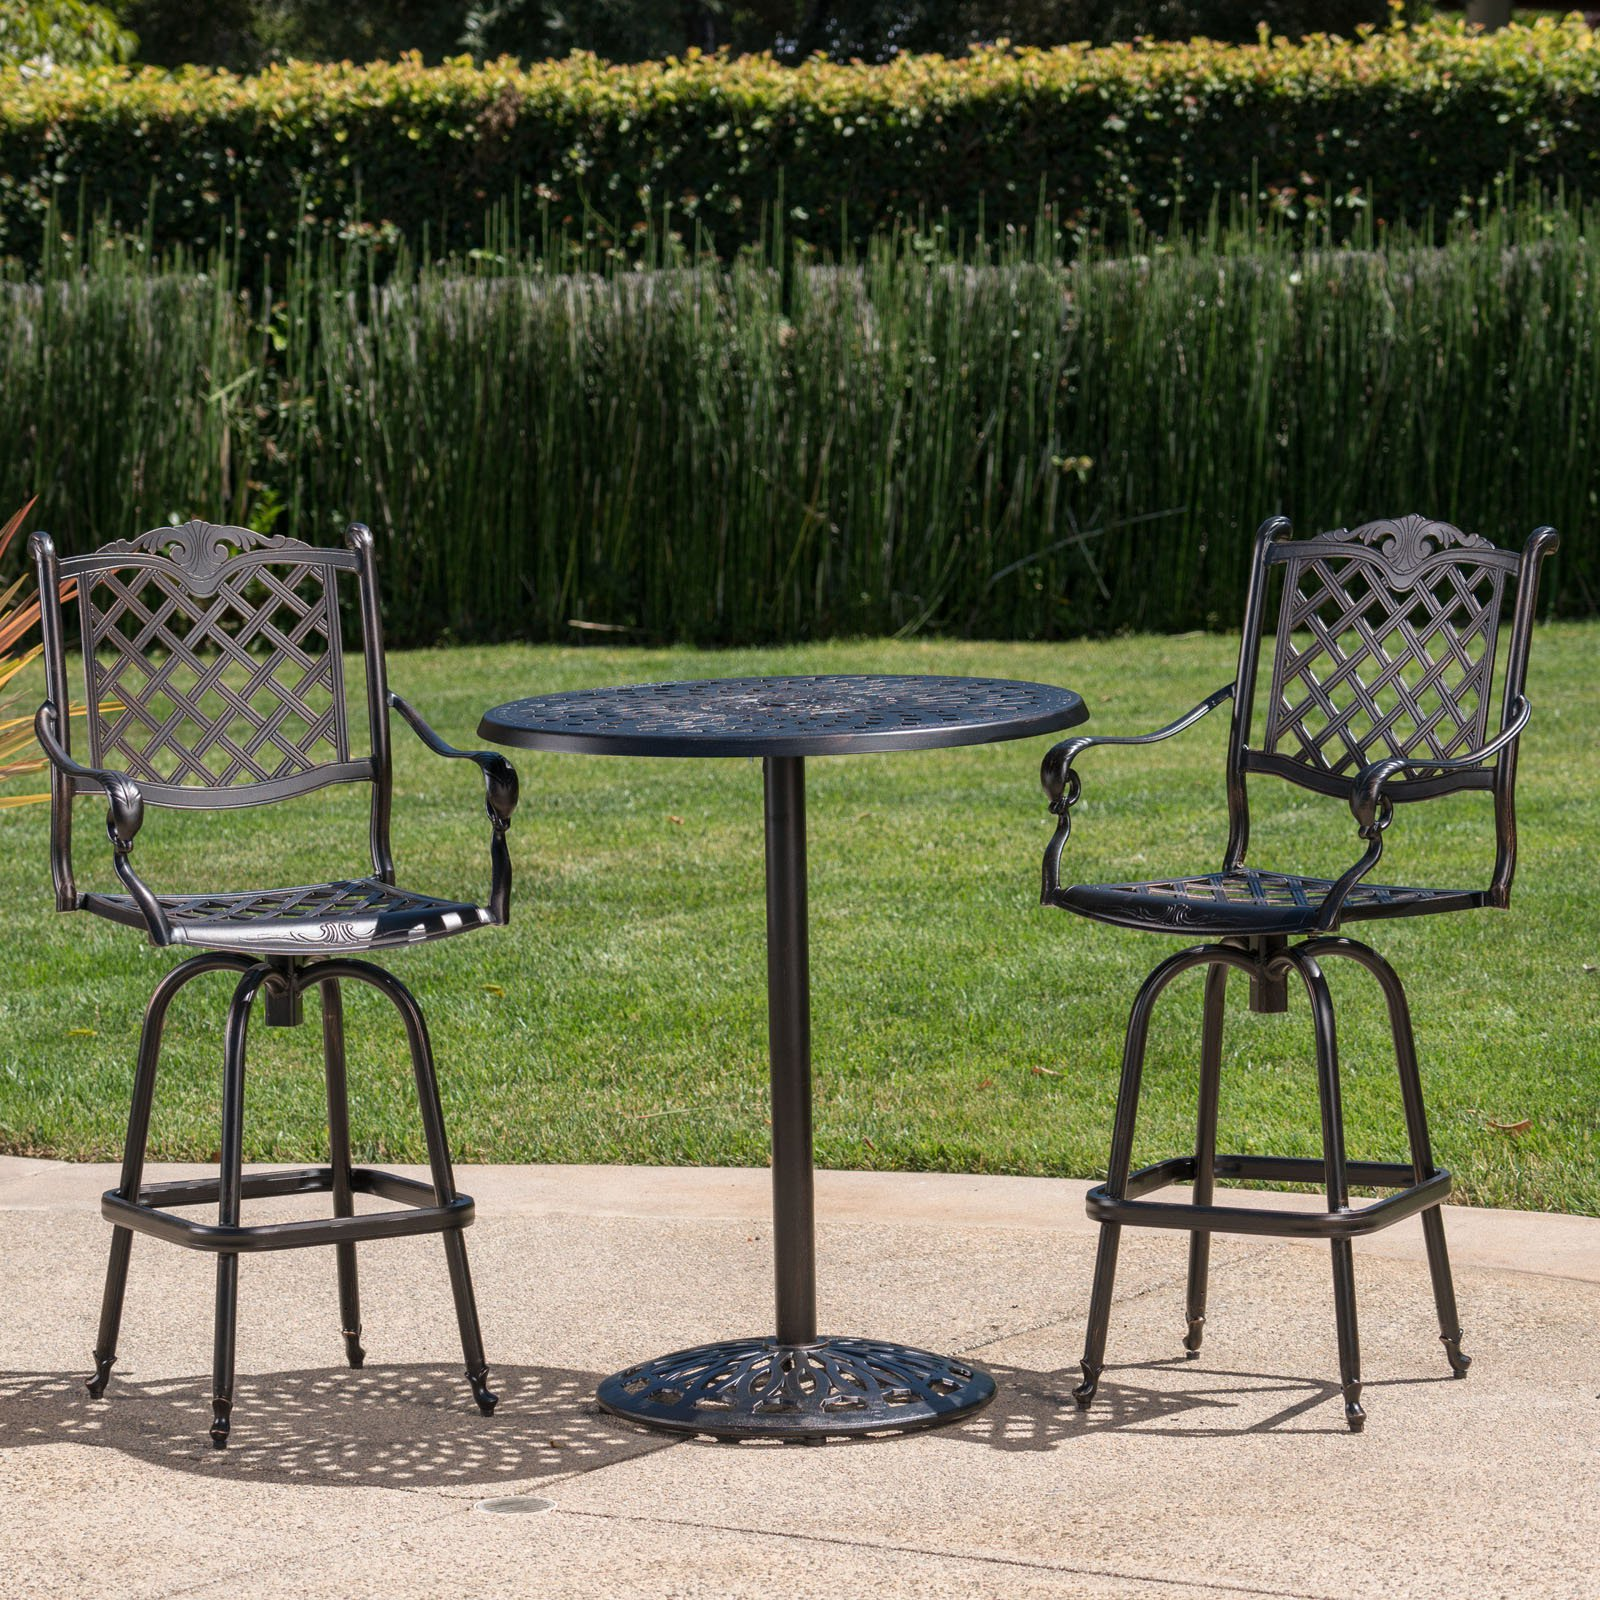 Arlana Cast Aluminum 3 Piece Outdoor Bar Set